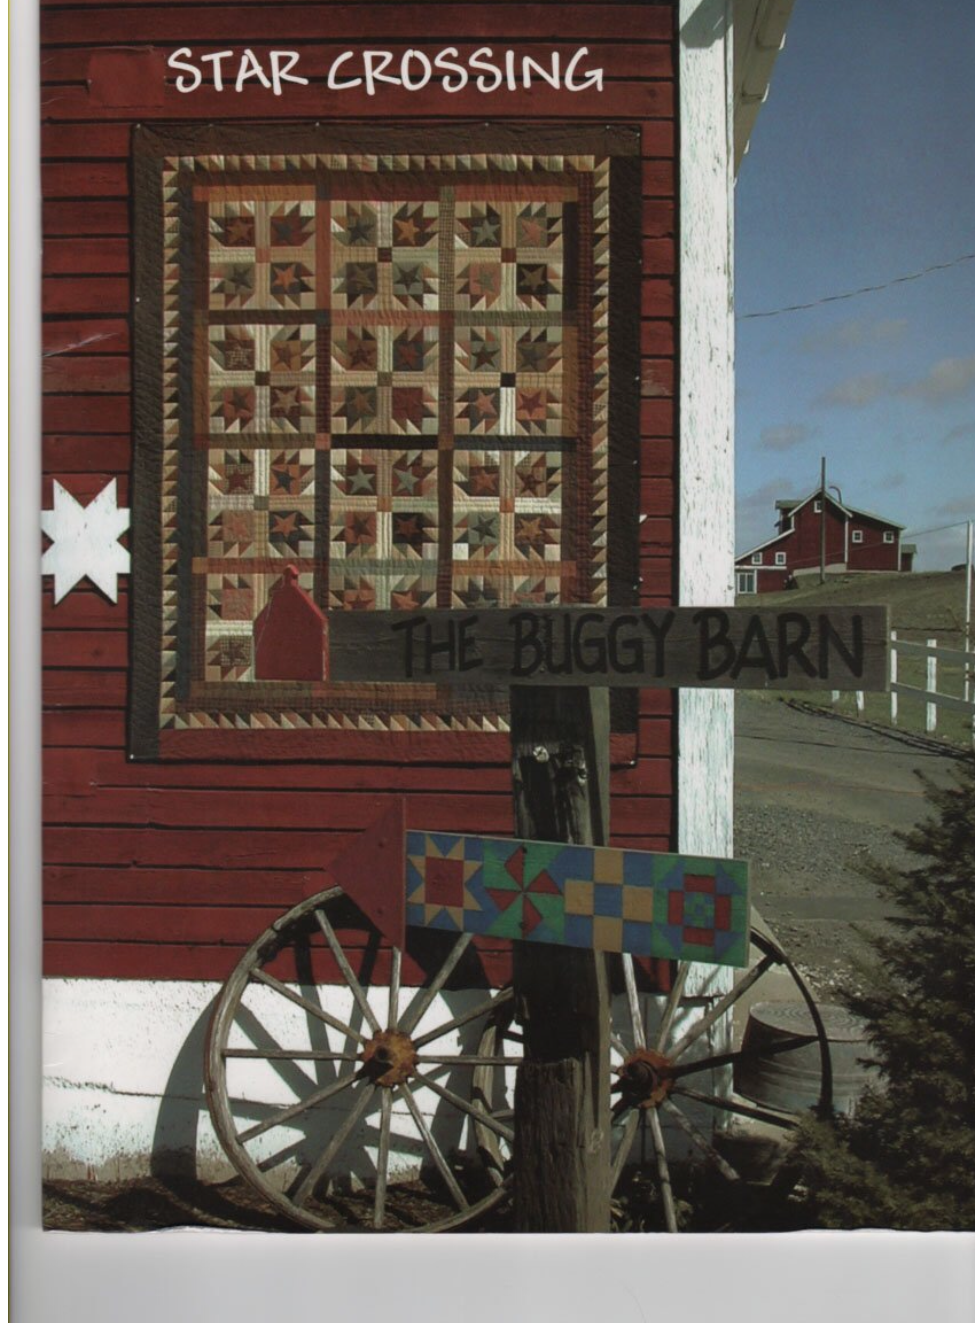 BB00303 Buggy Barn Star Crossing